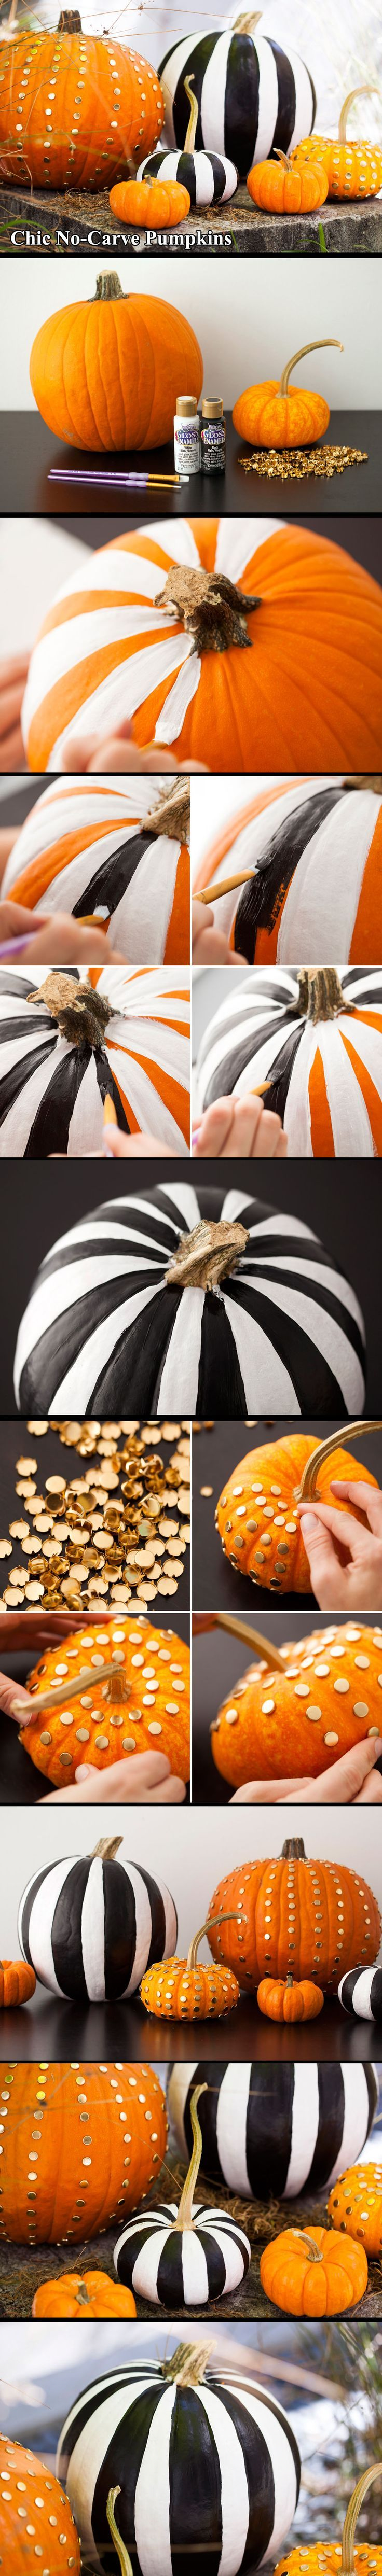 Halloween party decor - 2 Ways To Make Chic No Carve Pumpkins